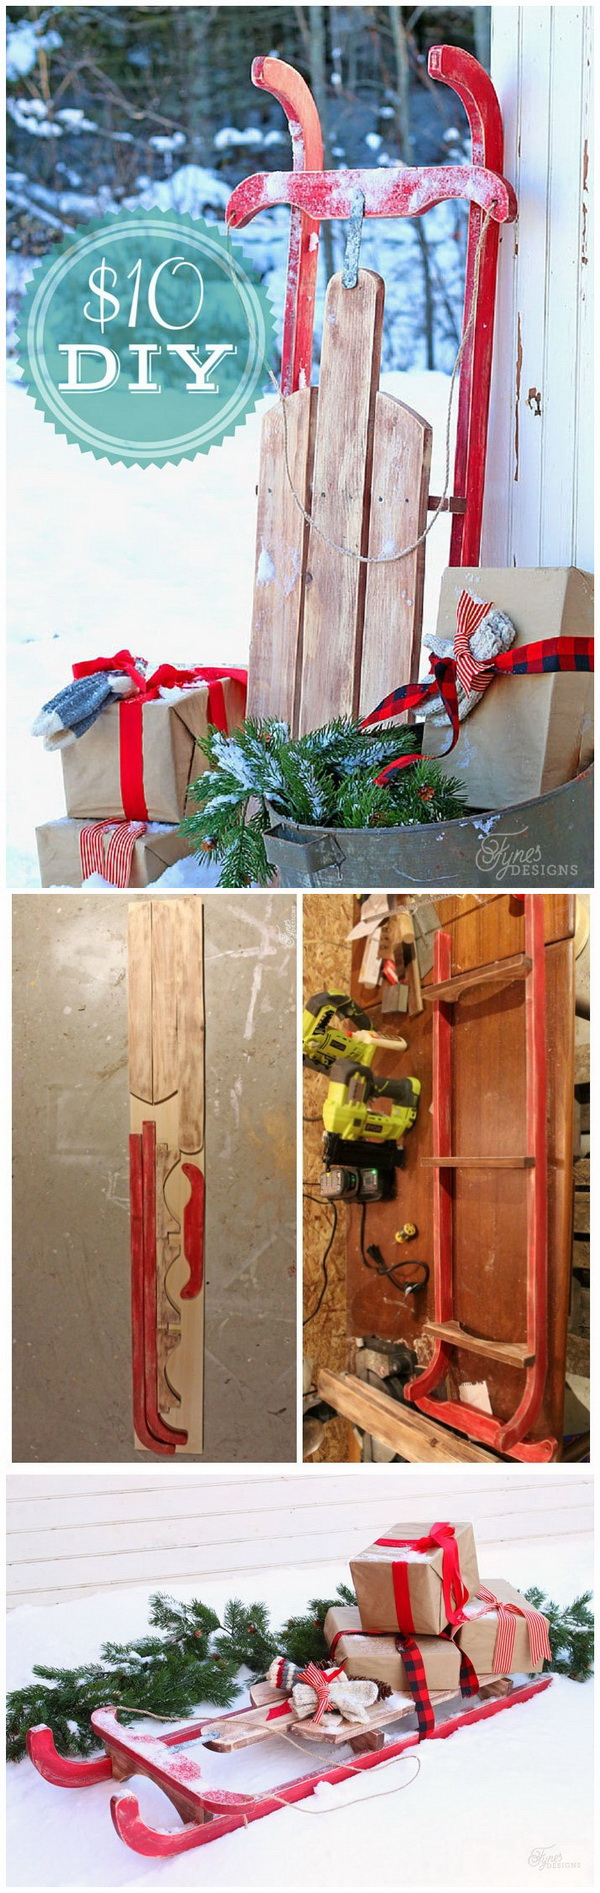 Repurpose the old sled that you do not use anymore into an awesome decor piece for your holiday.